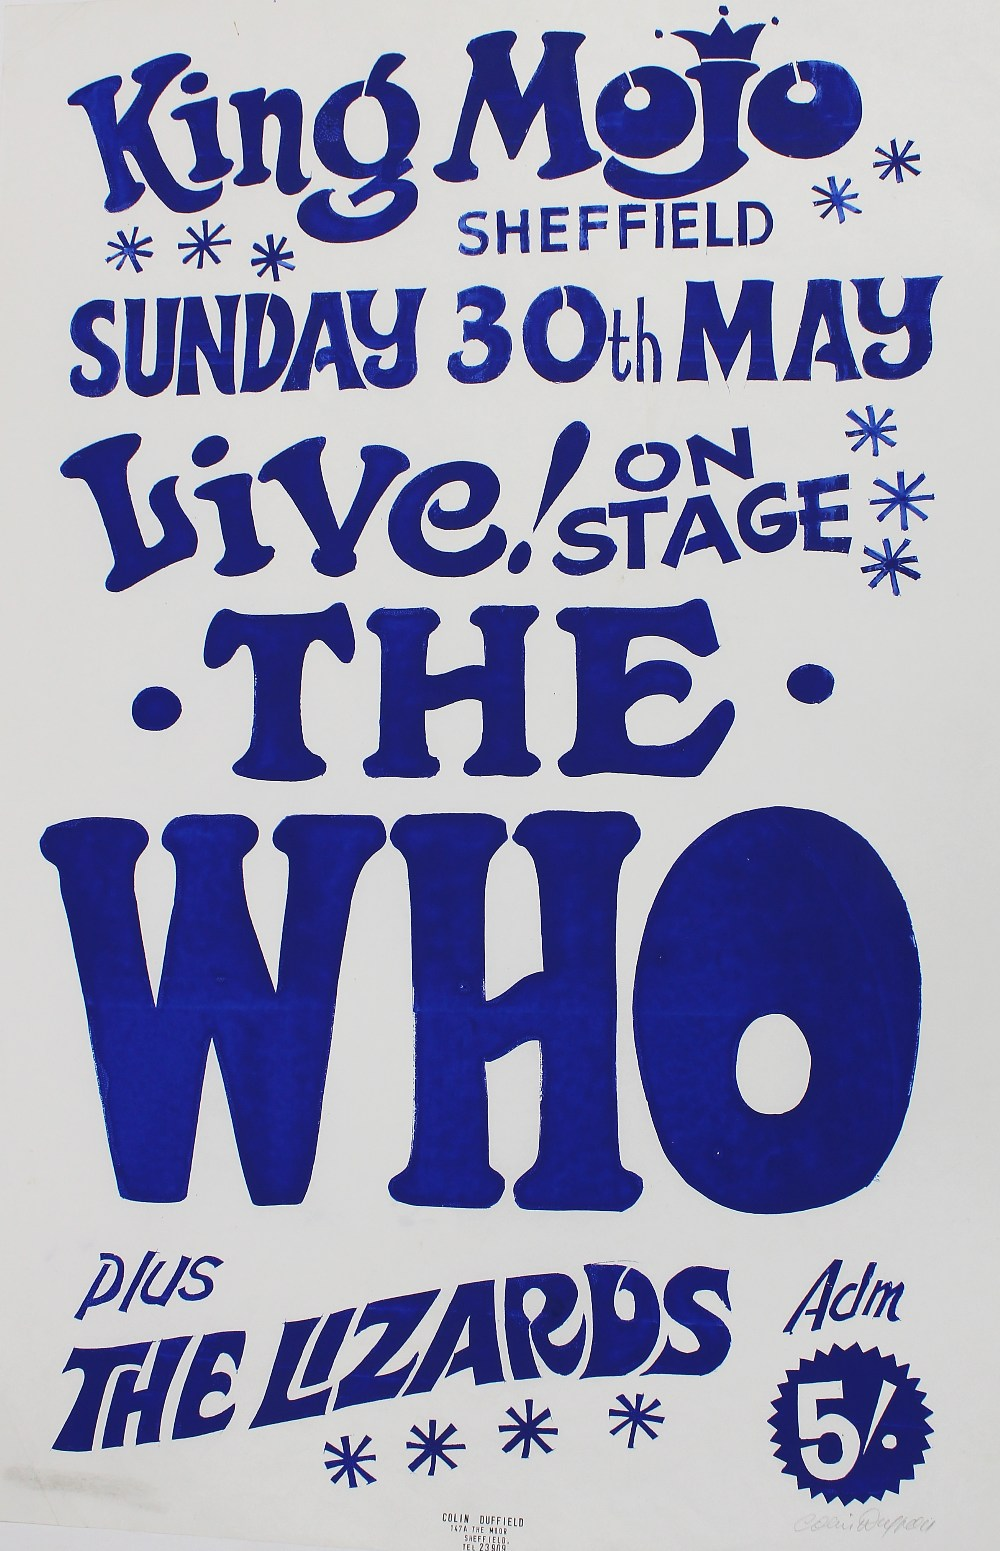 The Who - rare hand produced poster by Sheffield legend Colin Duffield, signed and stamped by the